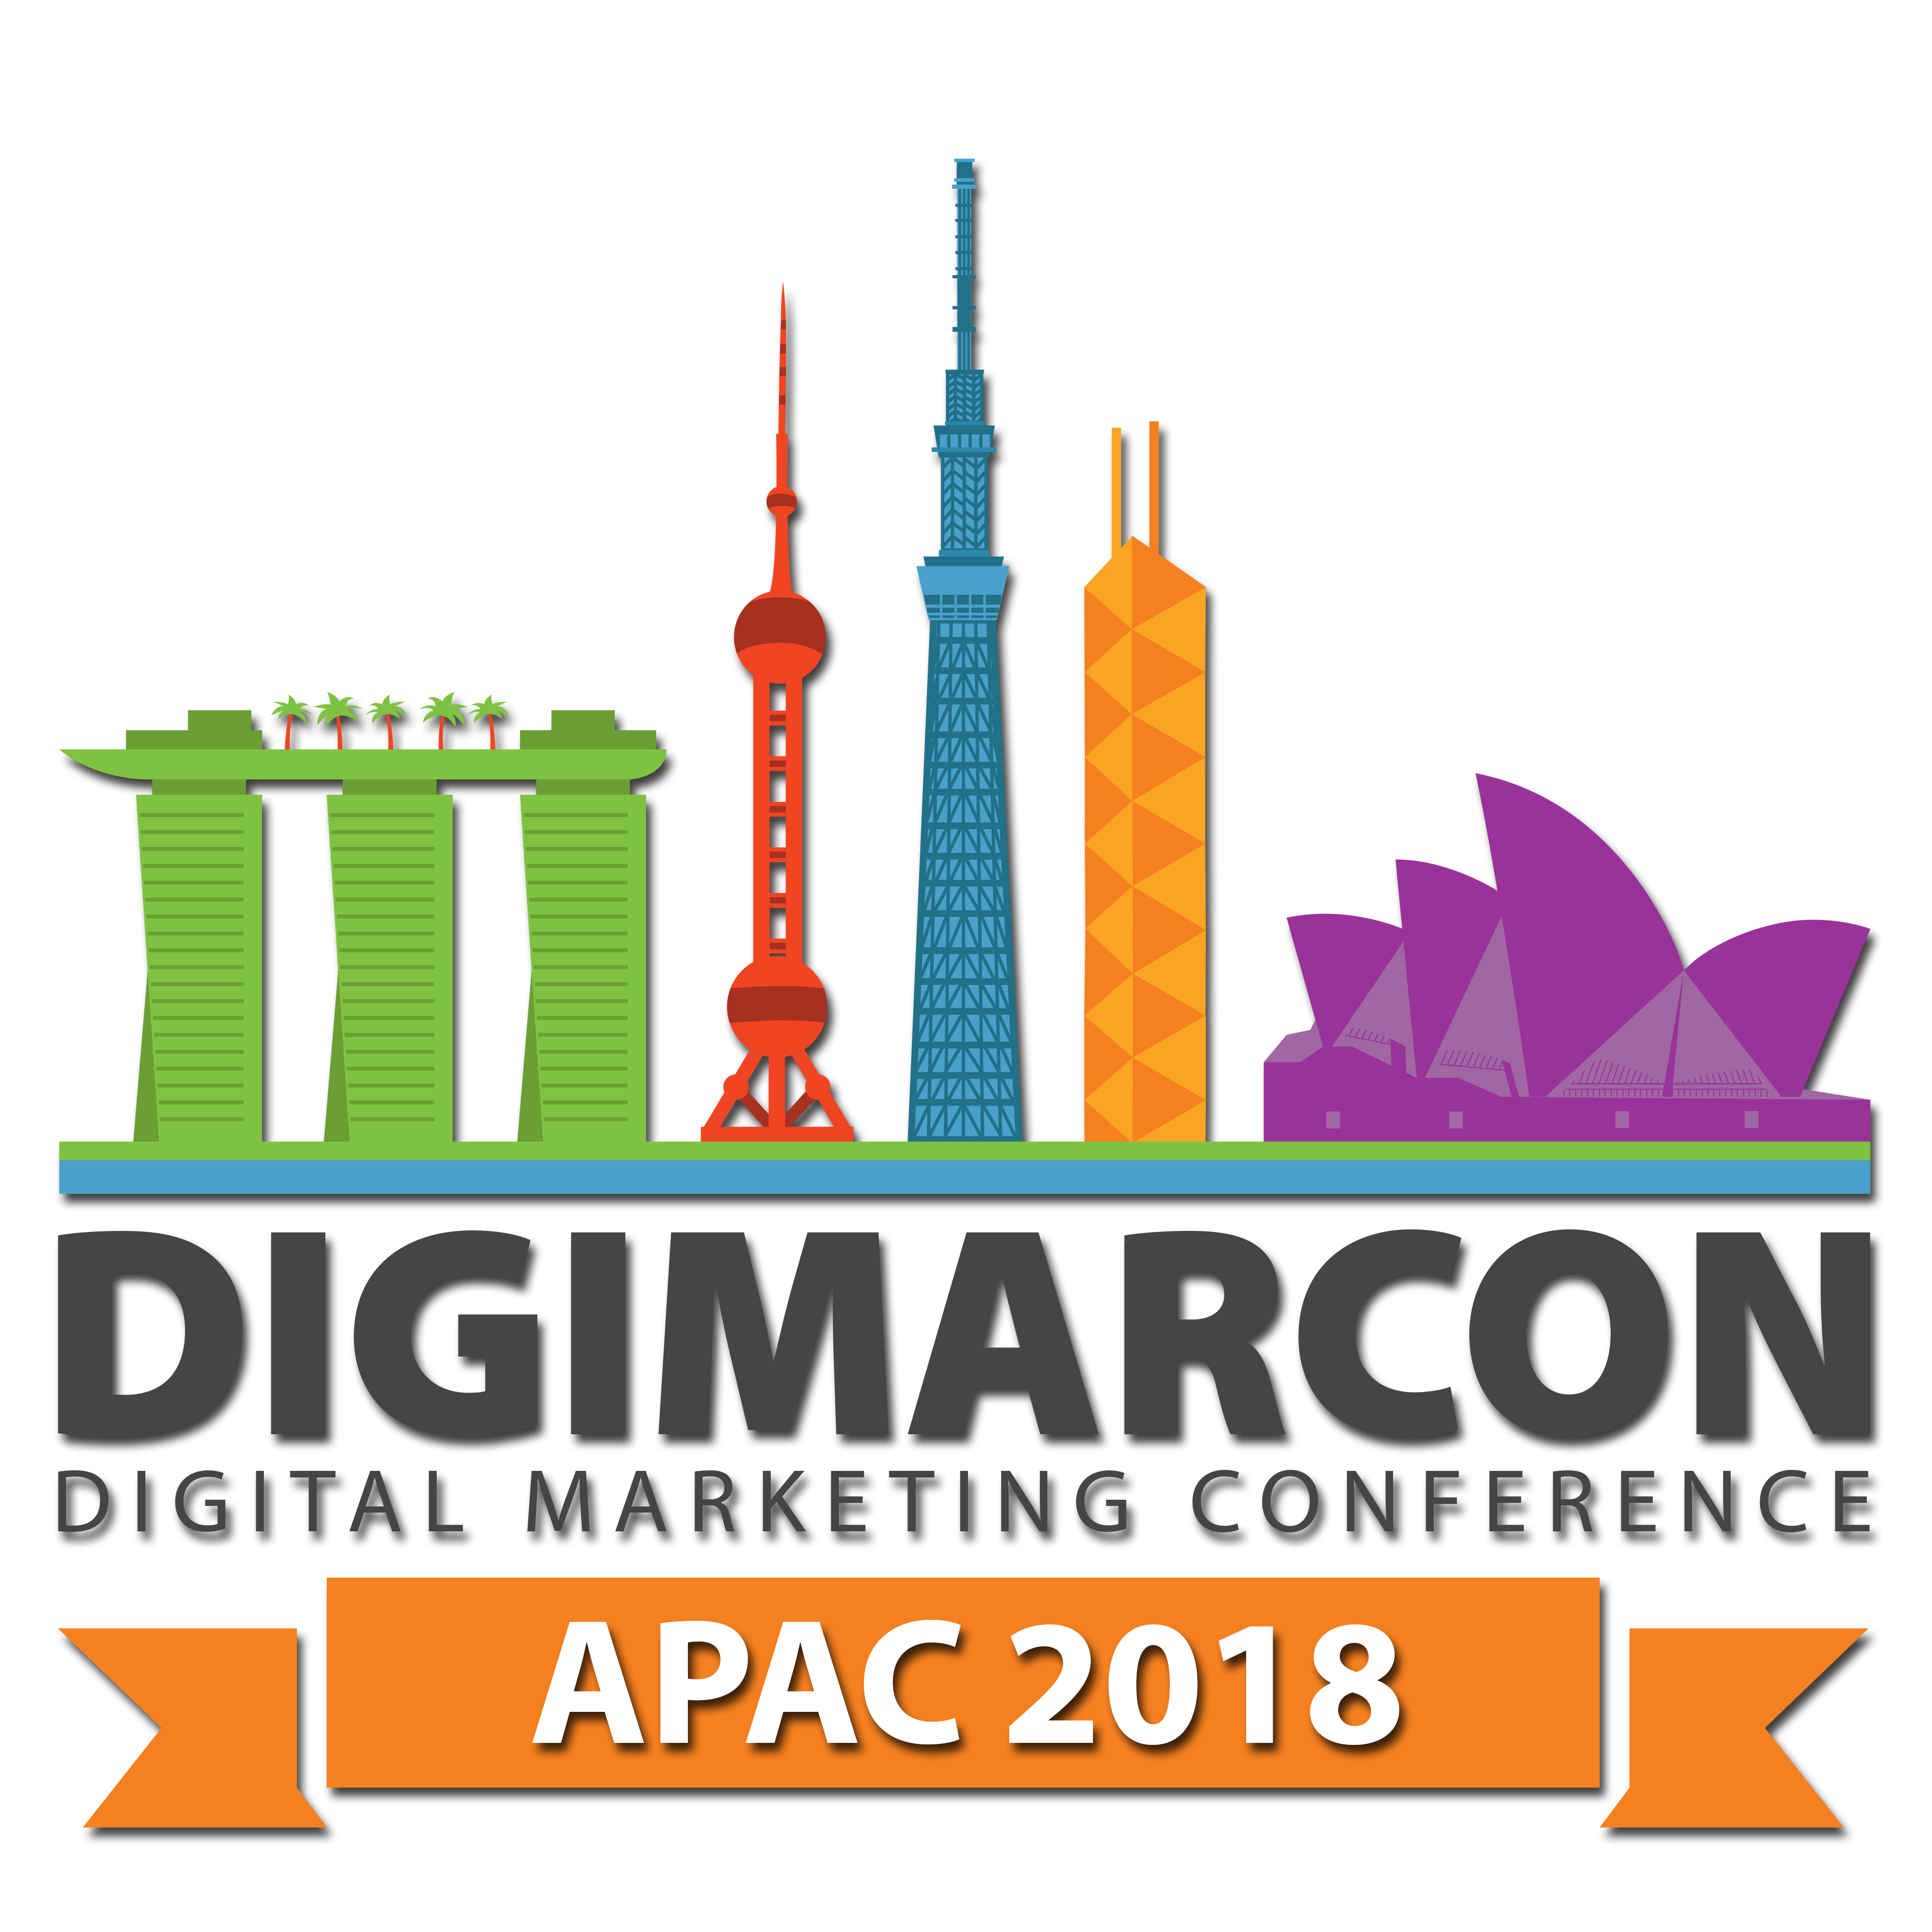 Singapore Federal Pacific Breakers Fire Hazard Youtube Digimarcon Asia 2019 Digital Marketing Conference Exhibition